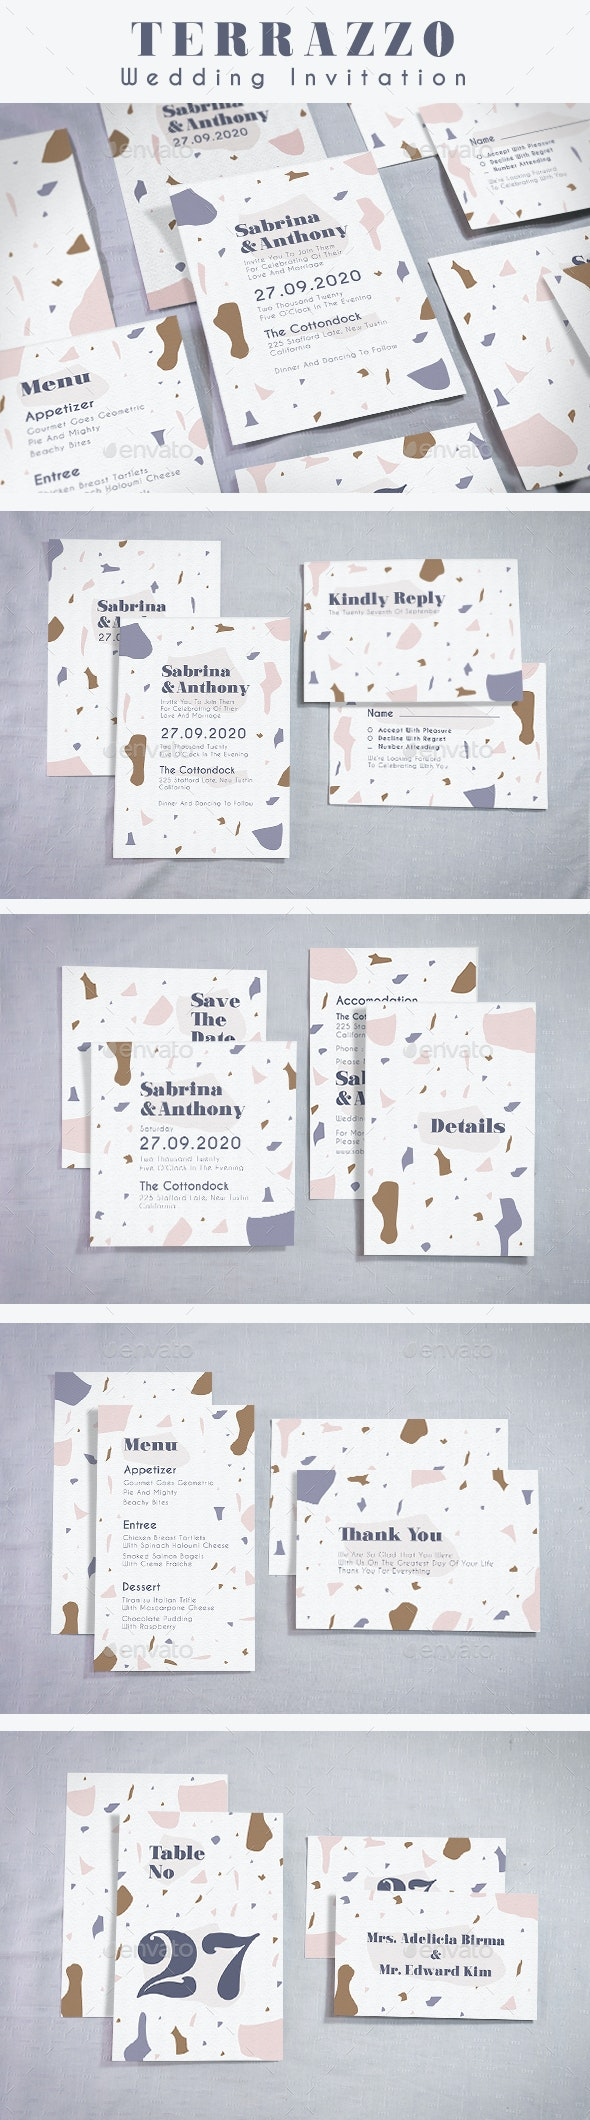 Terrazzo Wedding Invitation - Weddings Cards & Invites